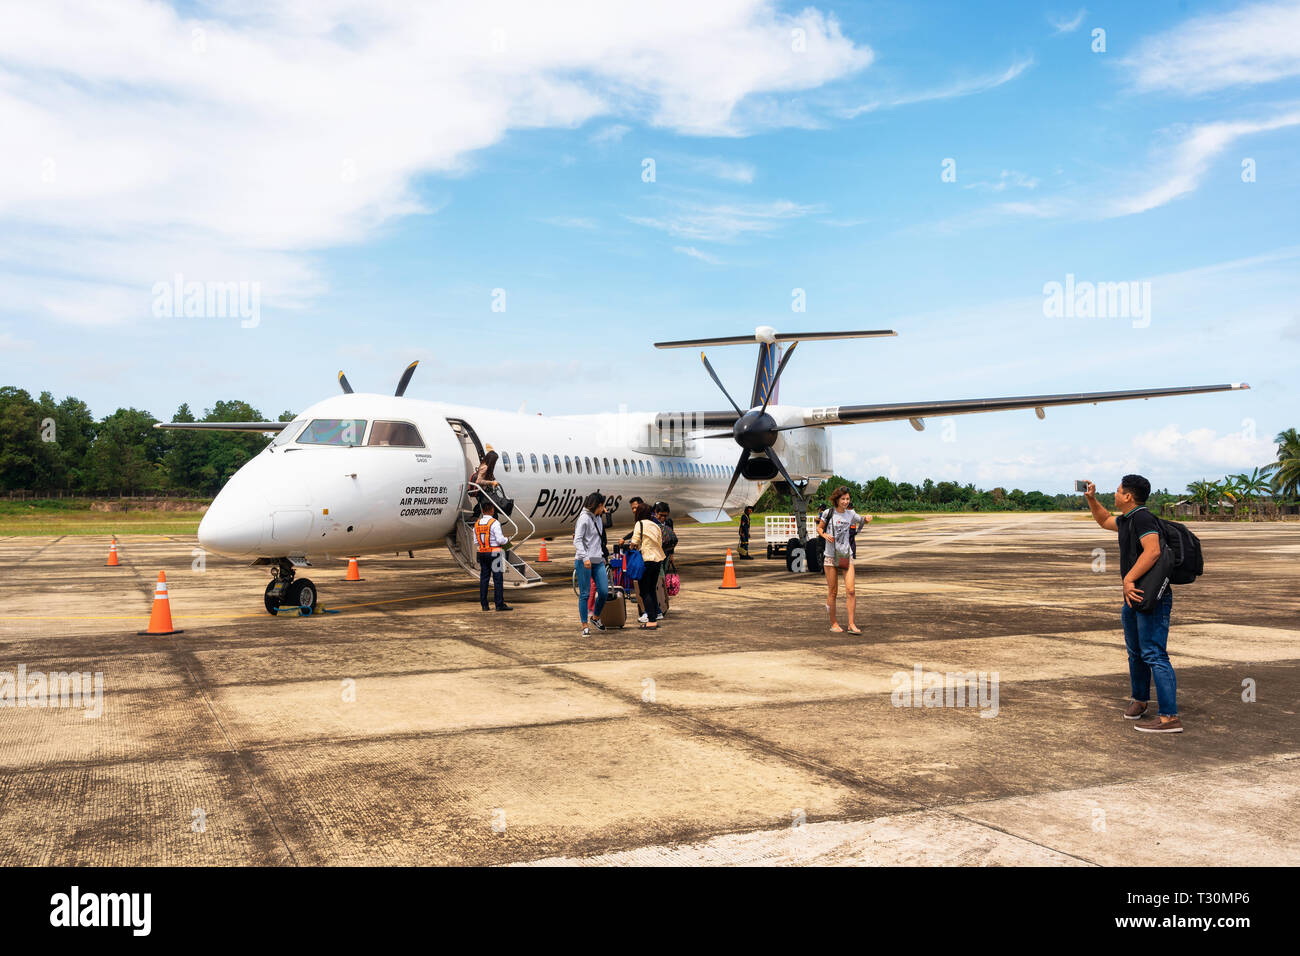 San Vicente, Philippines - January 30, 2019: Travellers leave Bombardier Q400 airplane Philippine Airlines at new small Airport in Palawan Island. - Stock Image